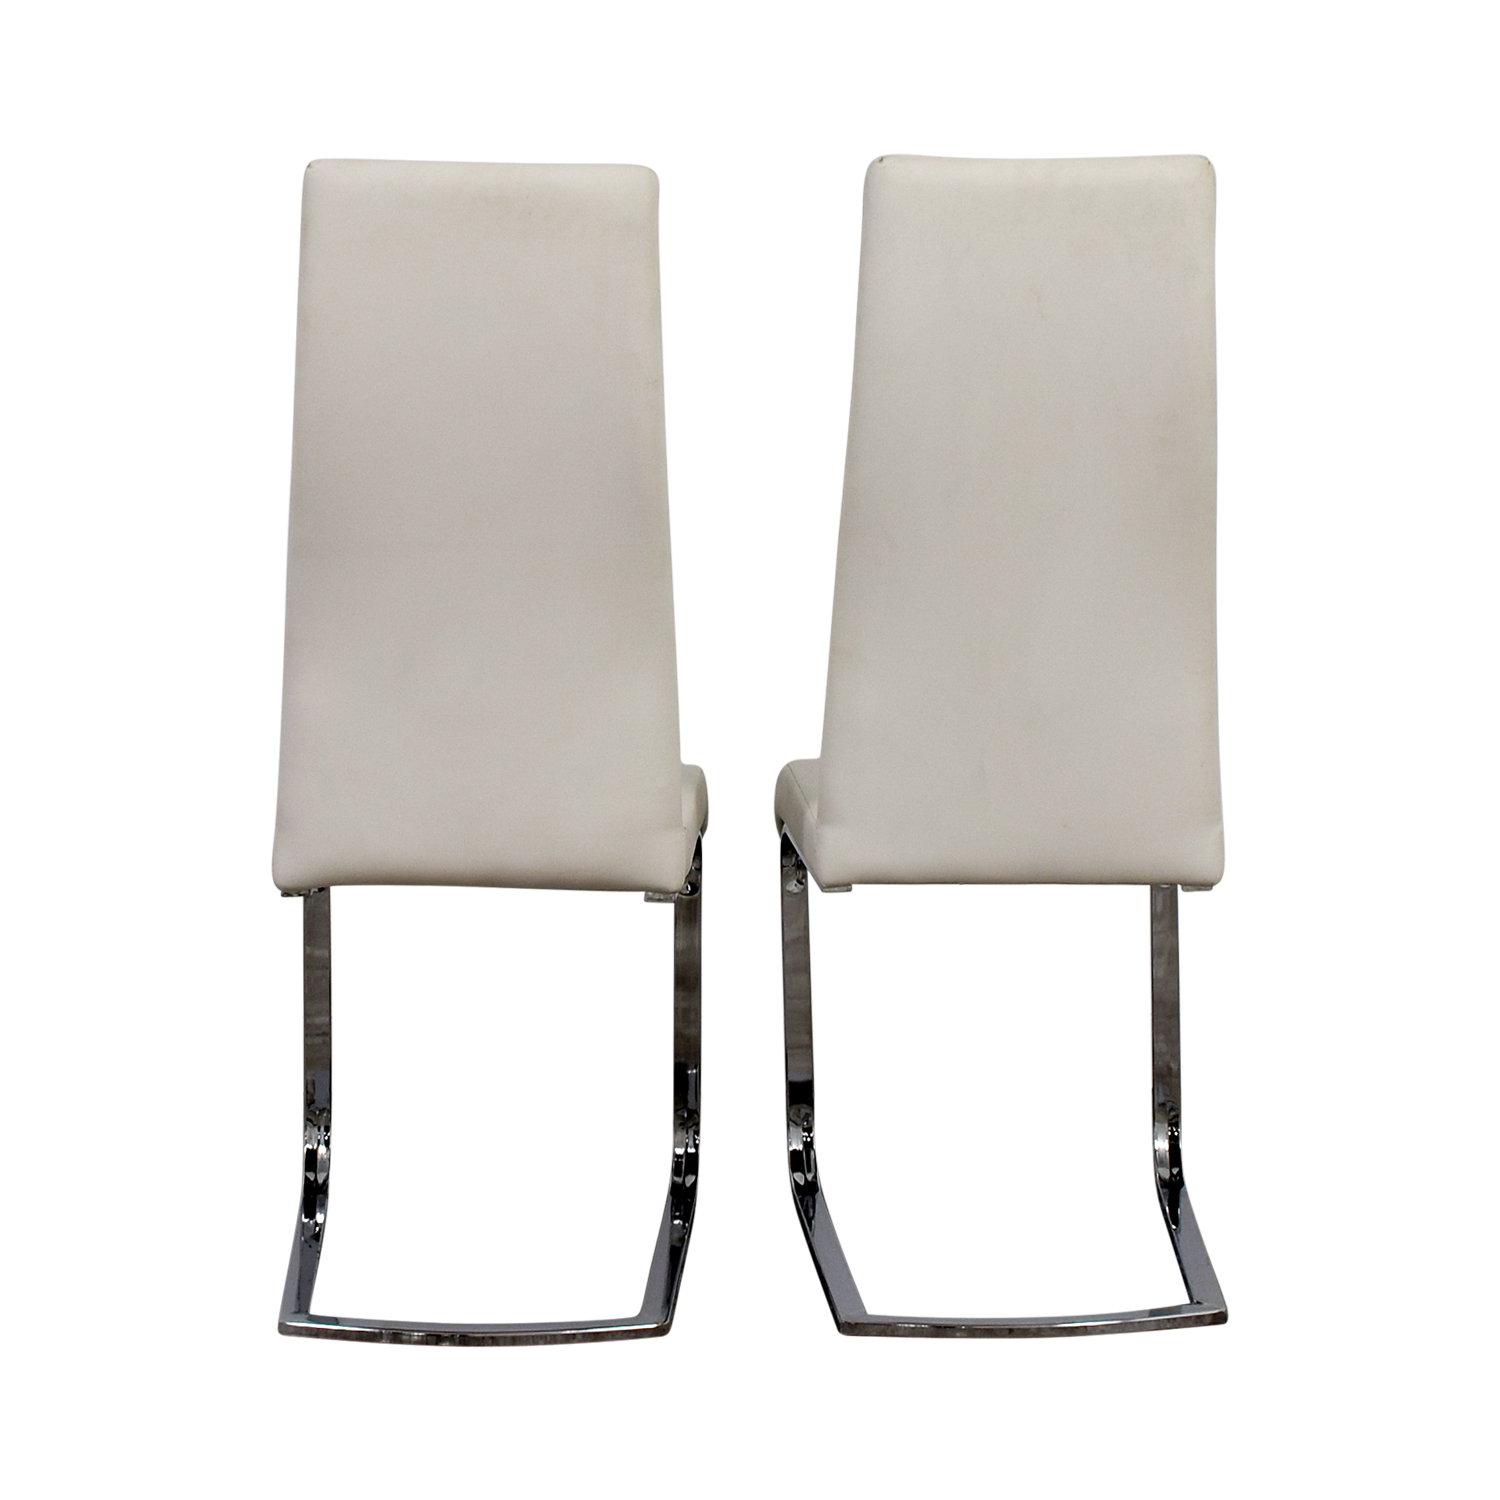 Coaster Furniture Coaster Furniture Breuer Style High Back Dining Chair in White Leatherette discount